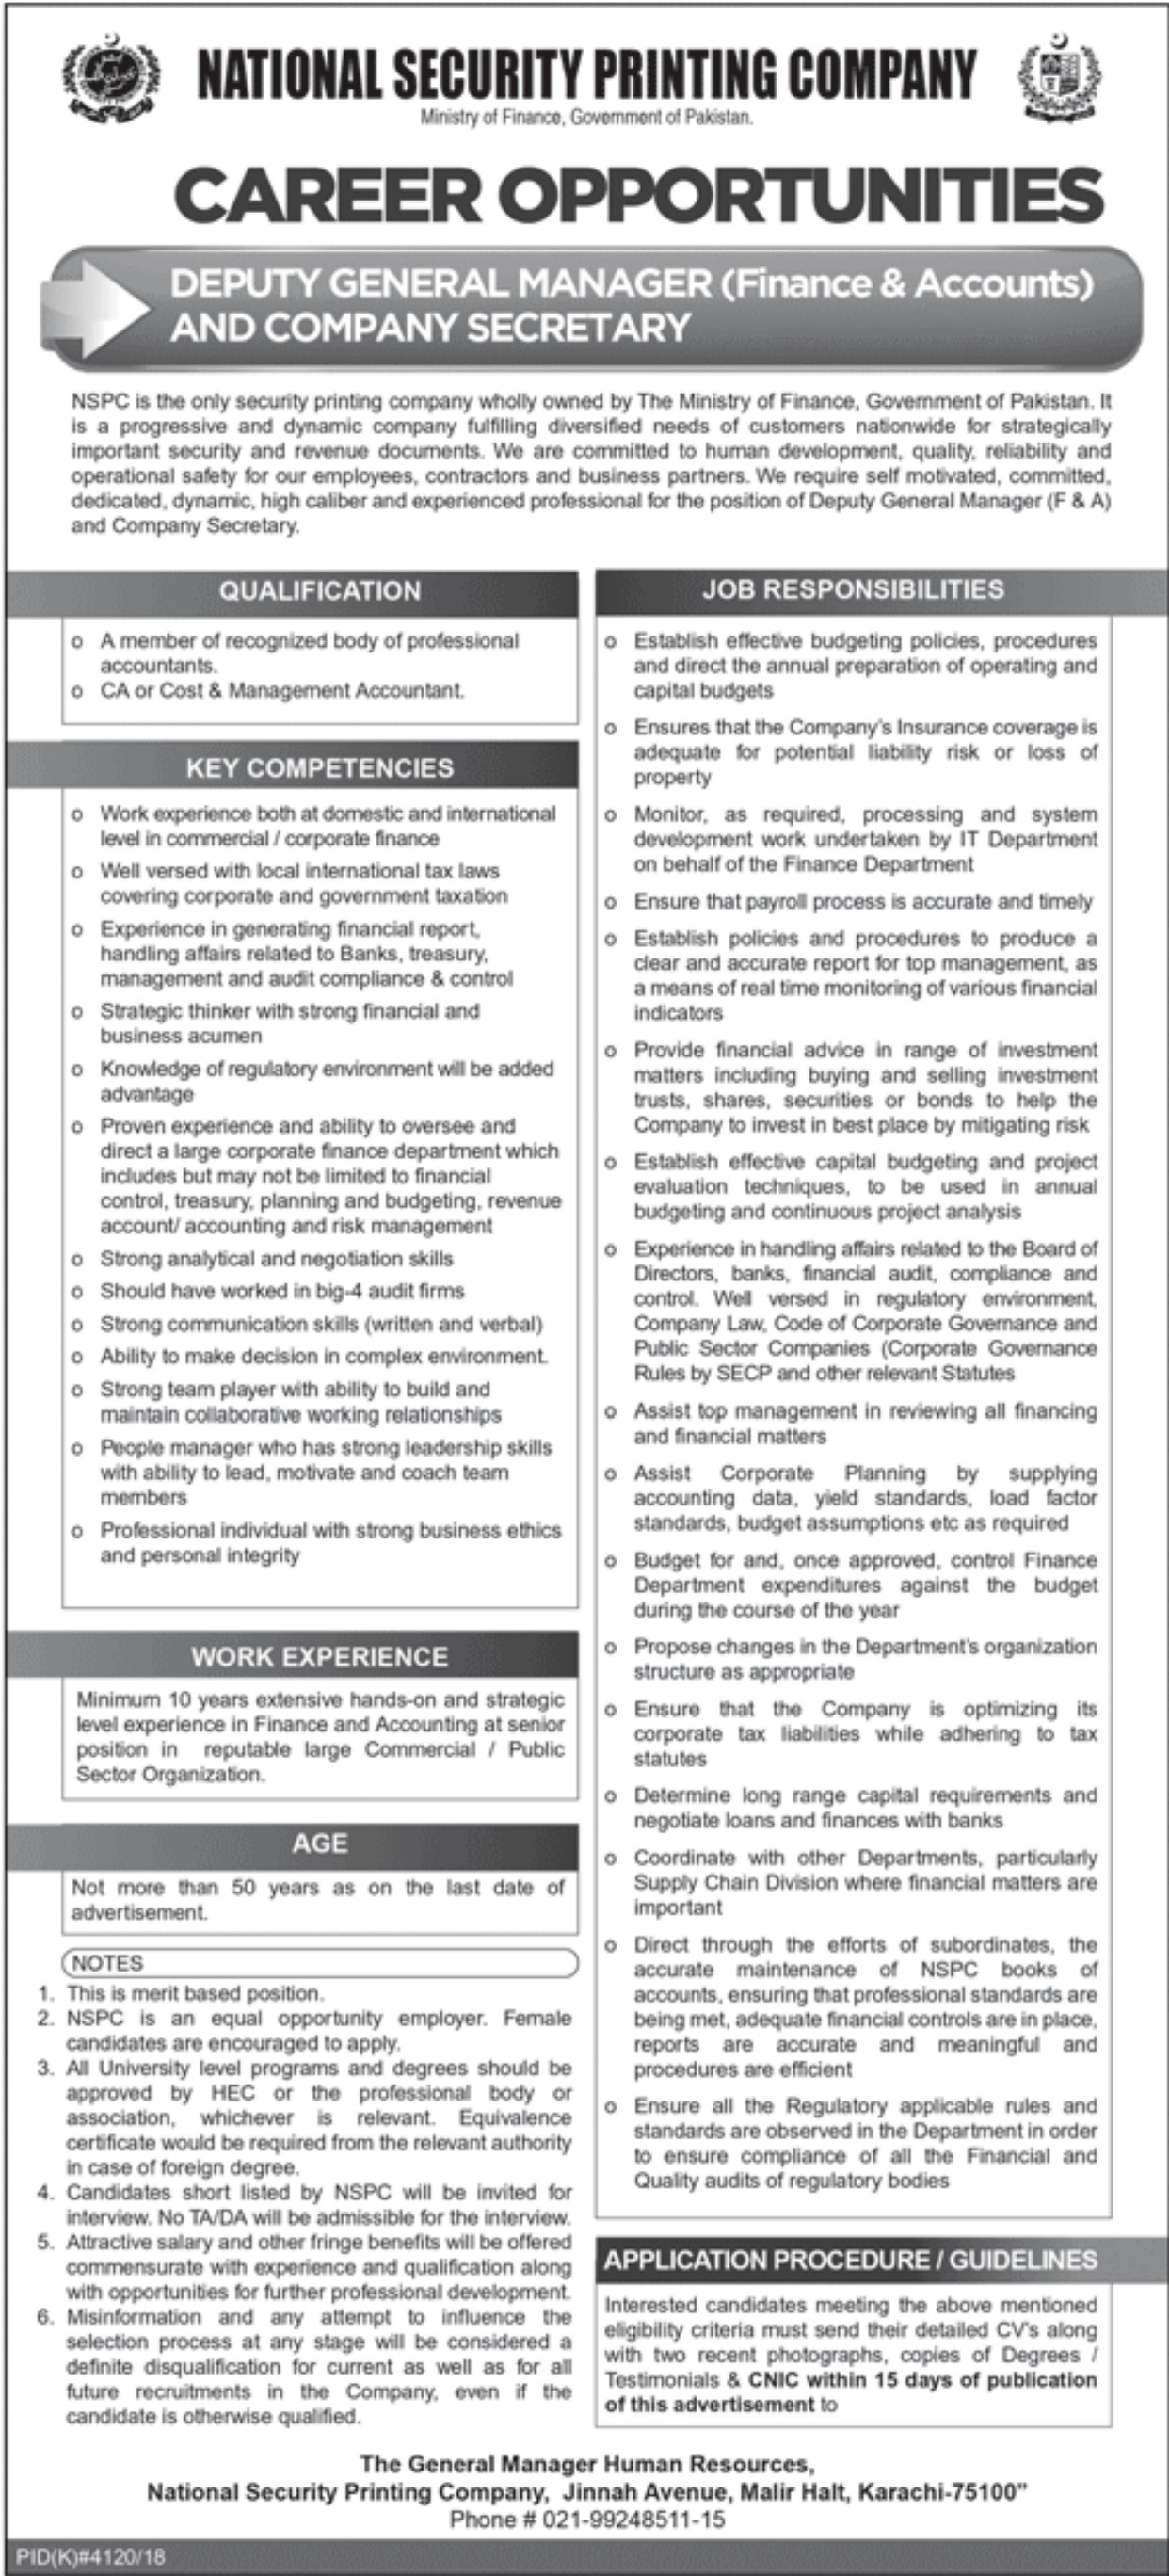 National Security Printing Company Jobs 2019